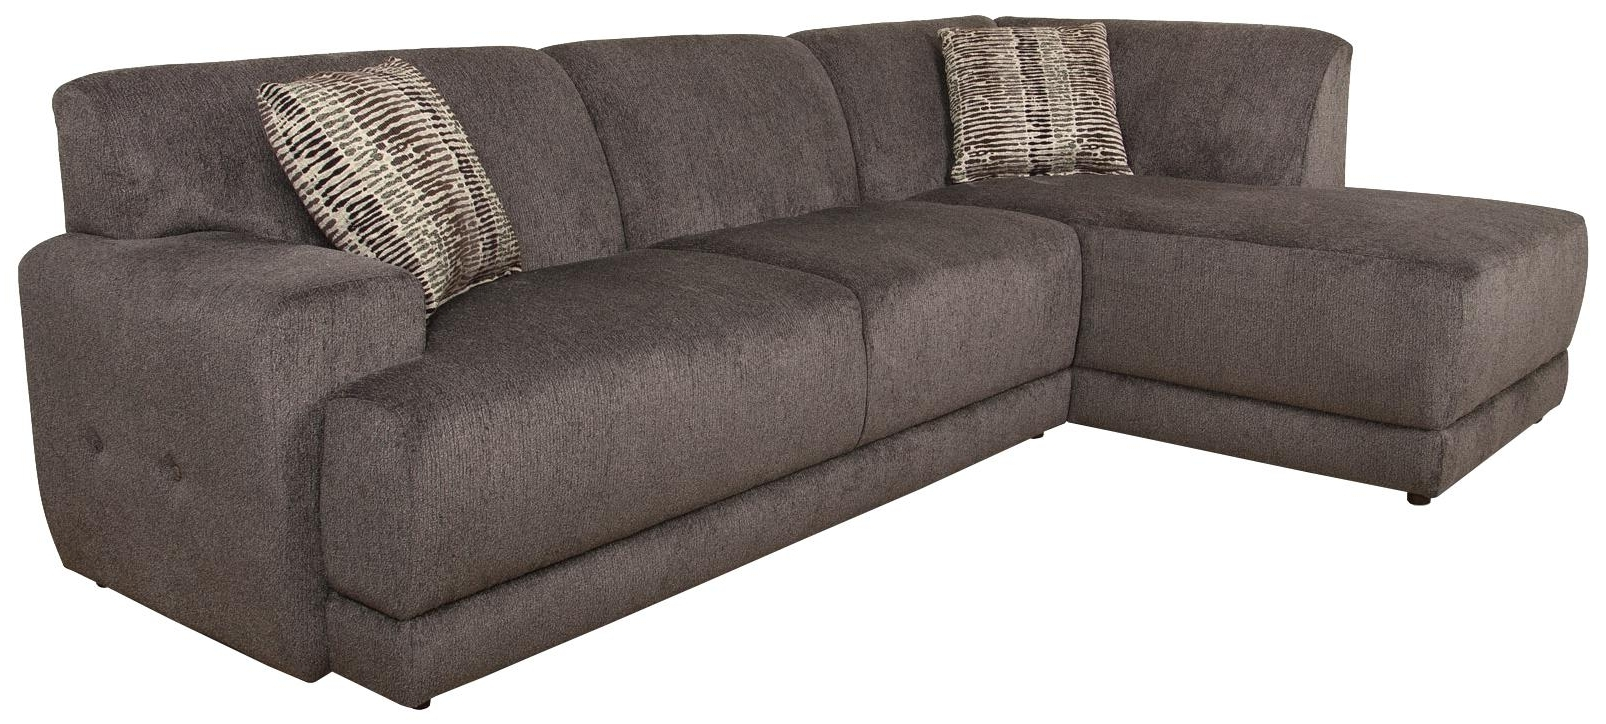 Quincy Il Sectional Sofas Intended For Trendy Lackawanna Sectional Sofaengland – Sherman's – Reclining (View 14 of 20)